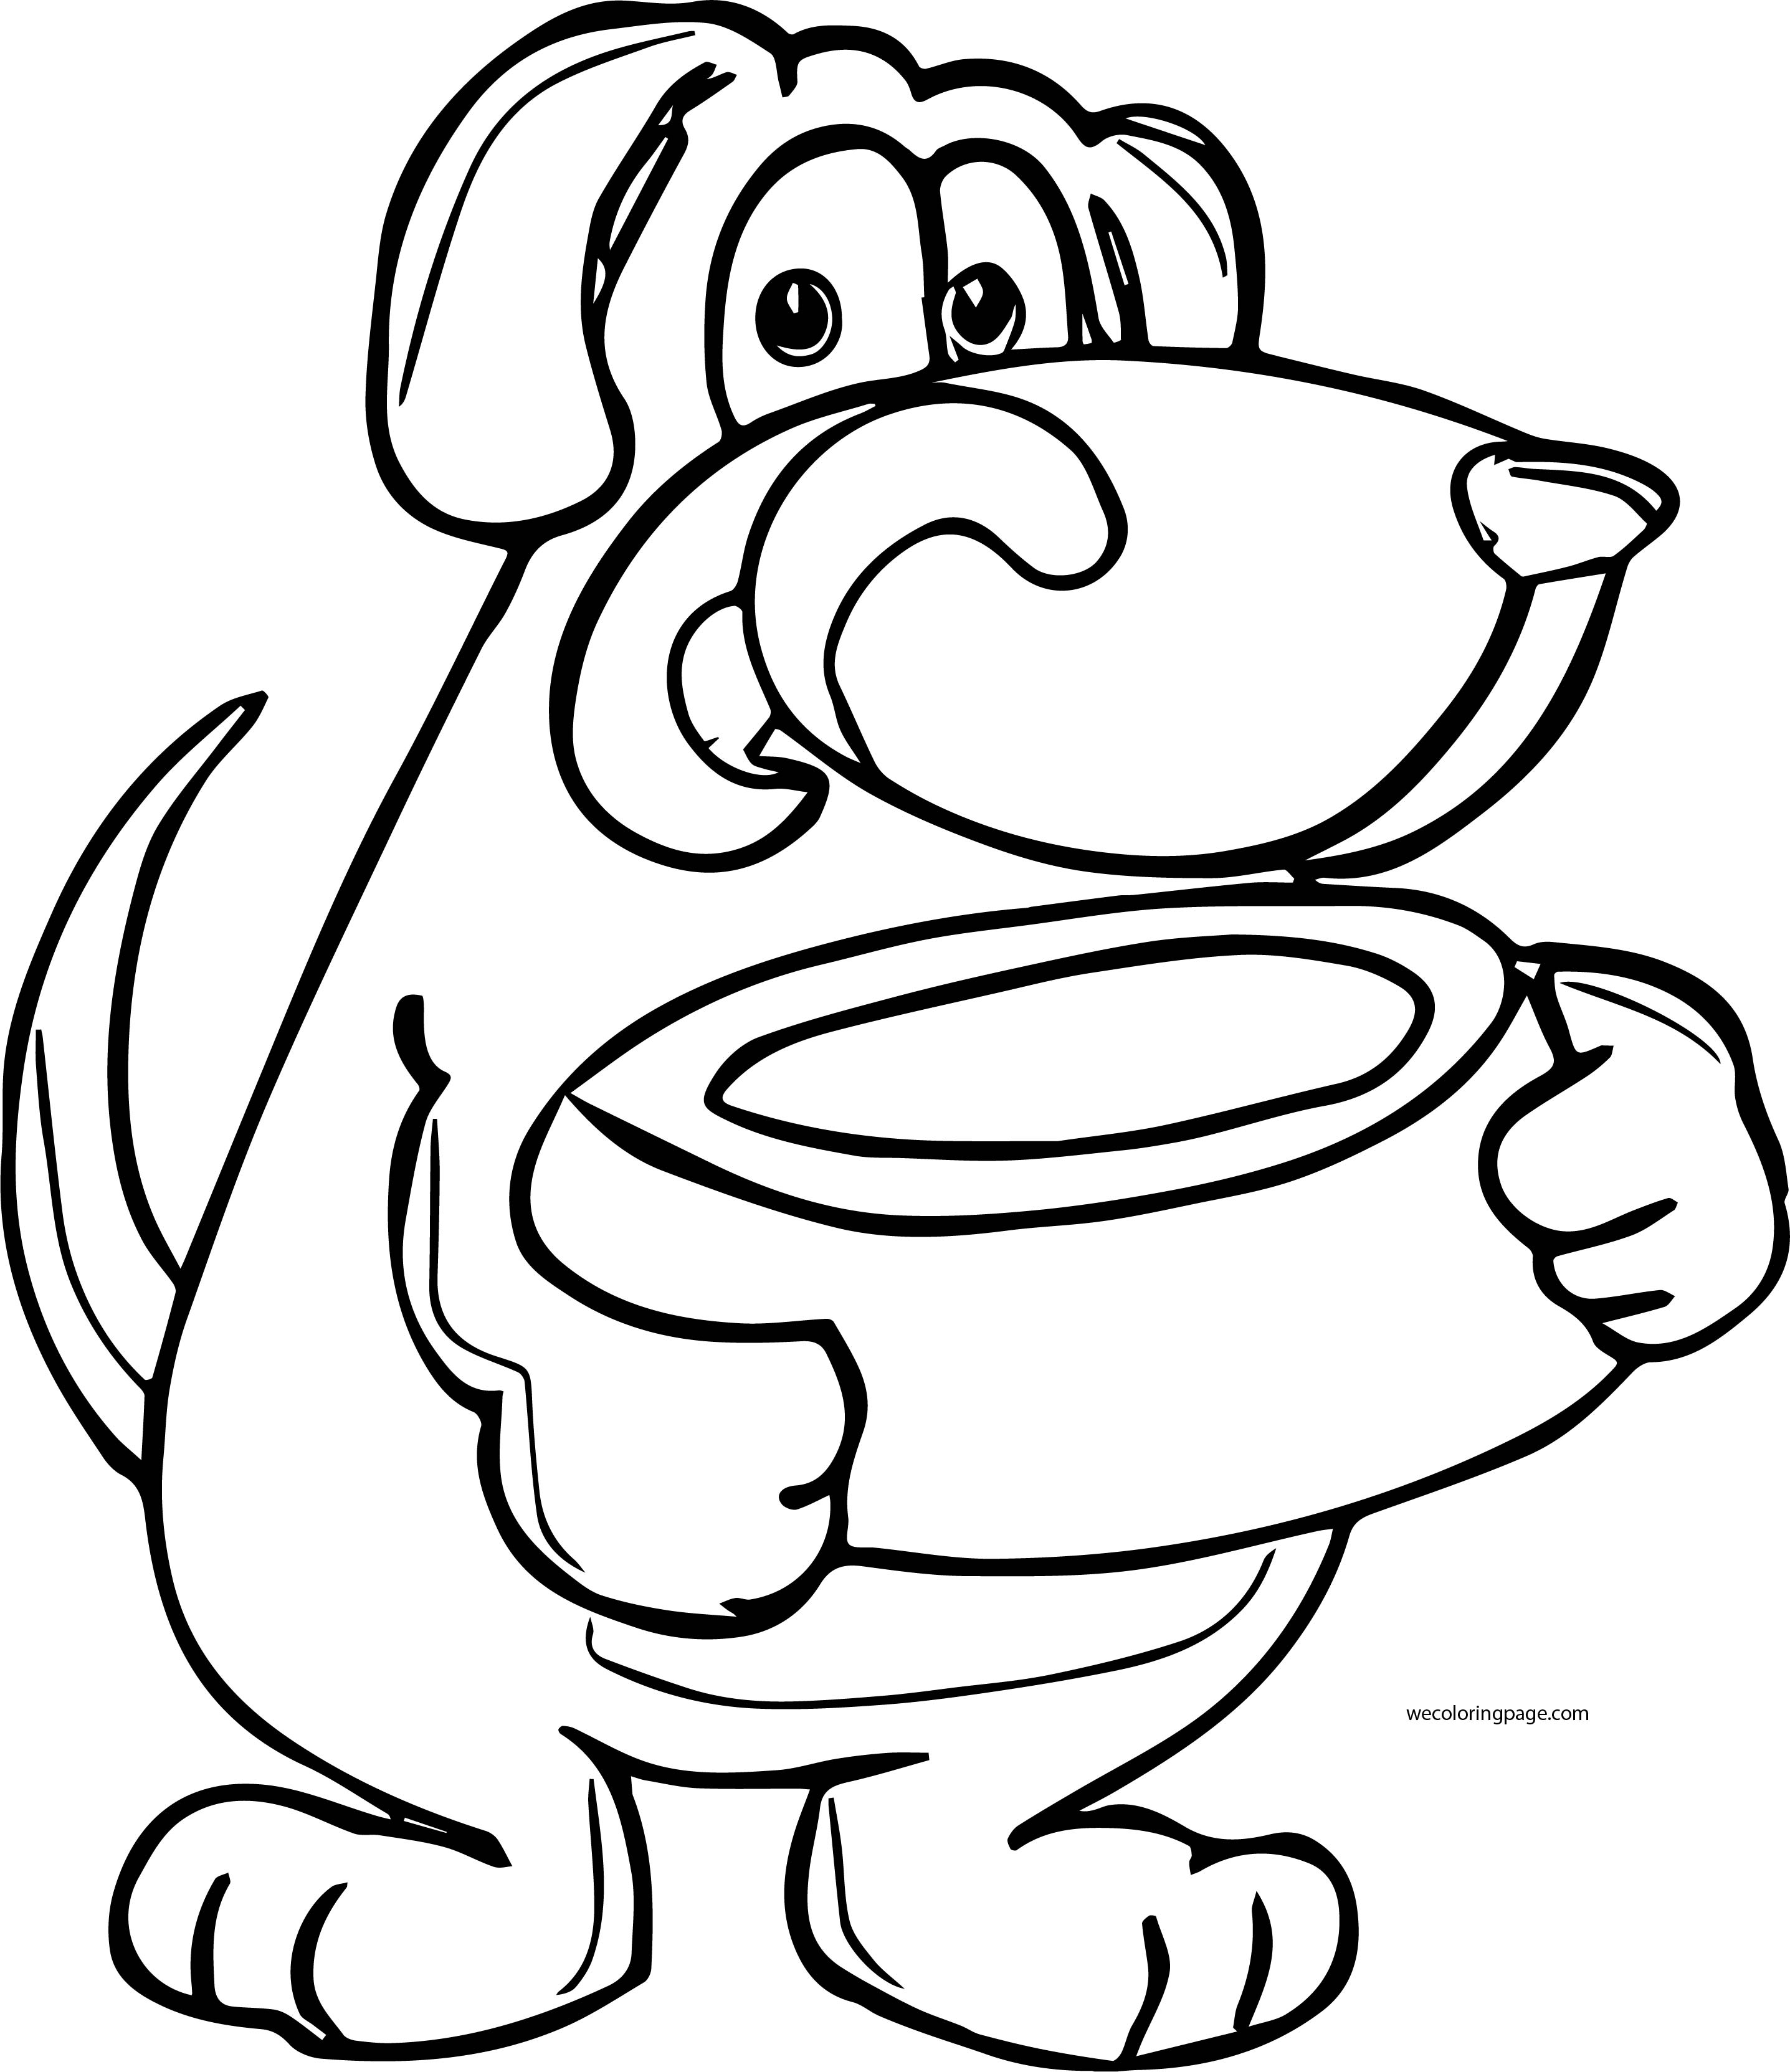 Dog Coloring Pages 029